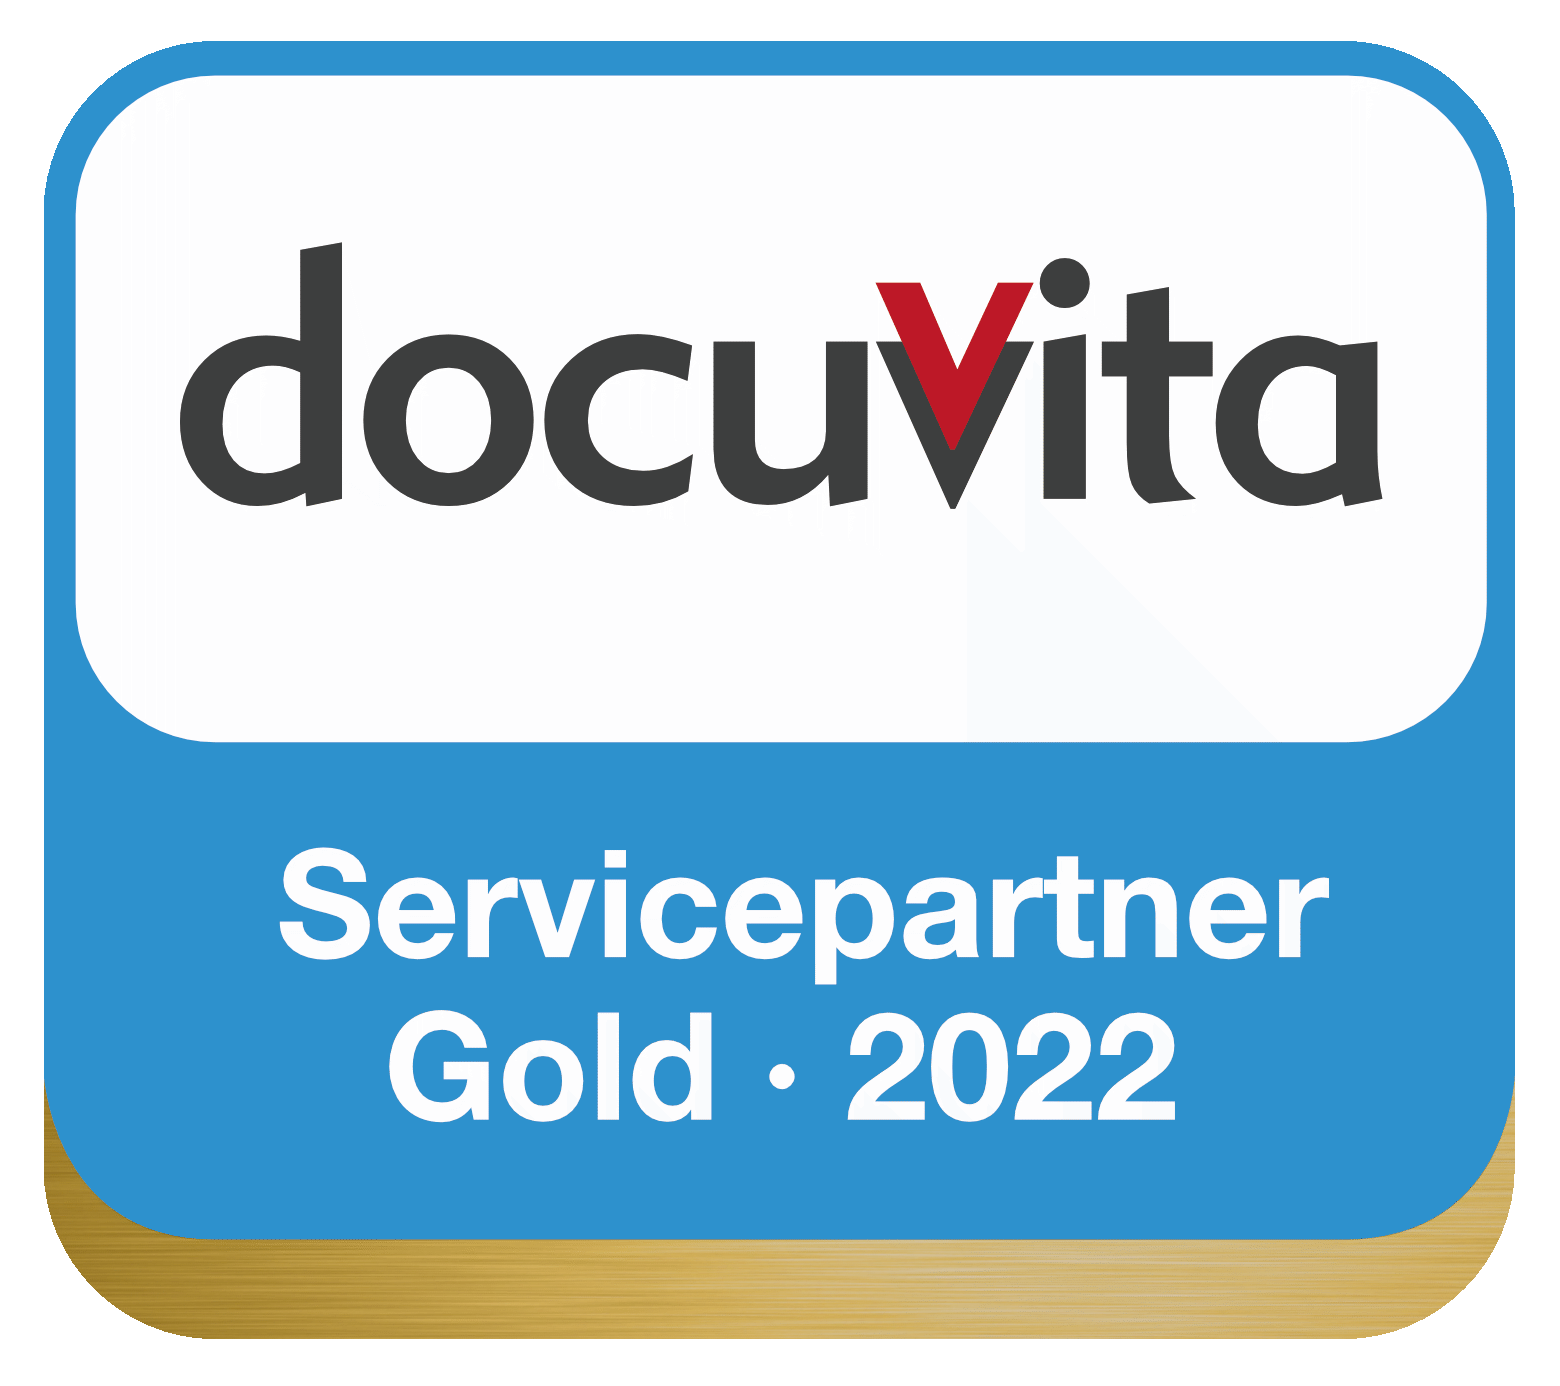 docuvita Servicepartner